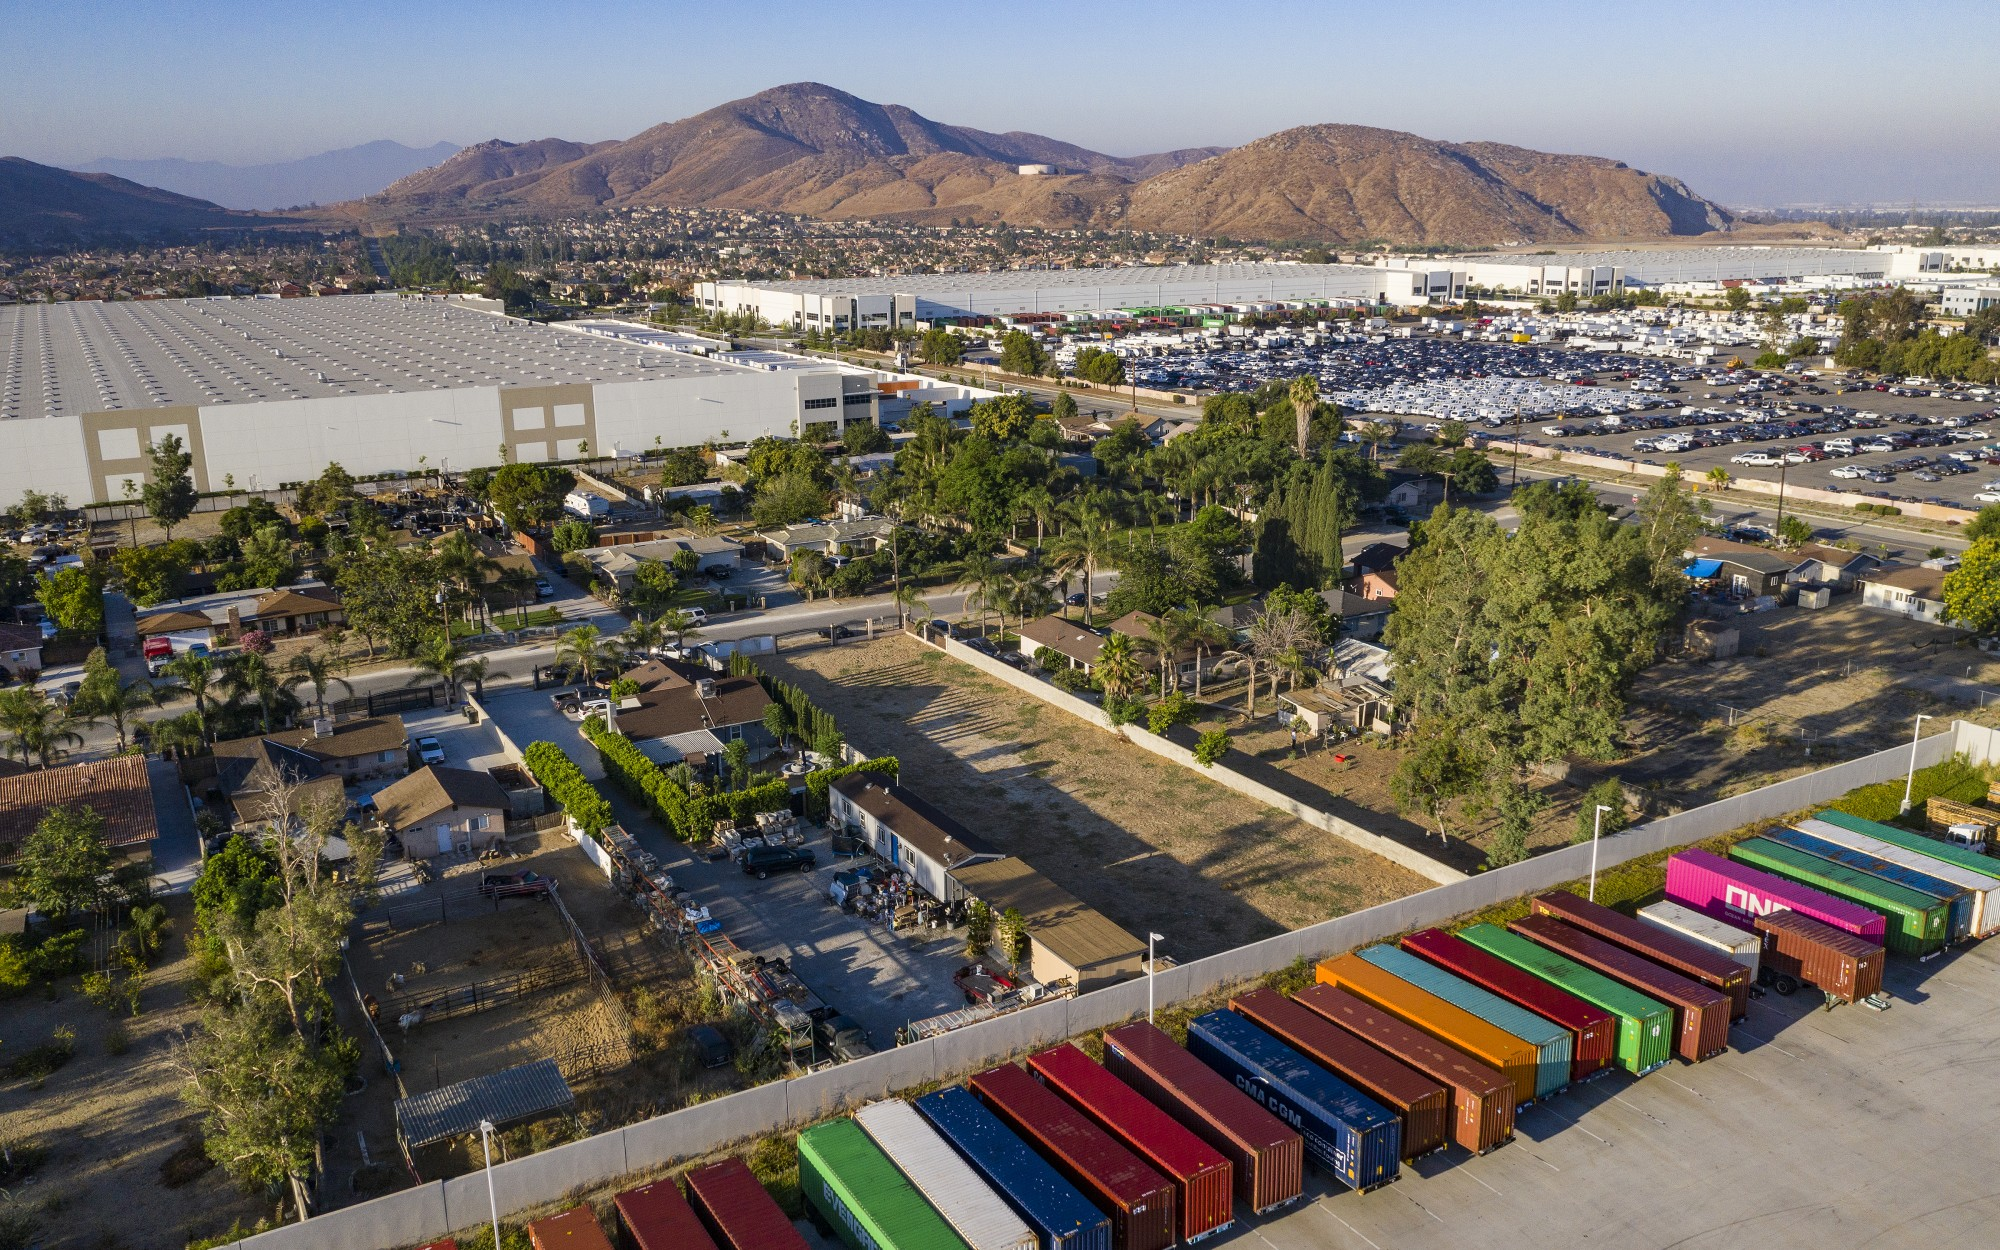 Manufactured Scarcity and the Inland Southern California Economy